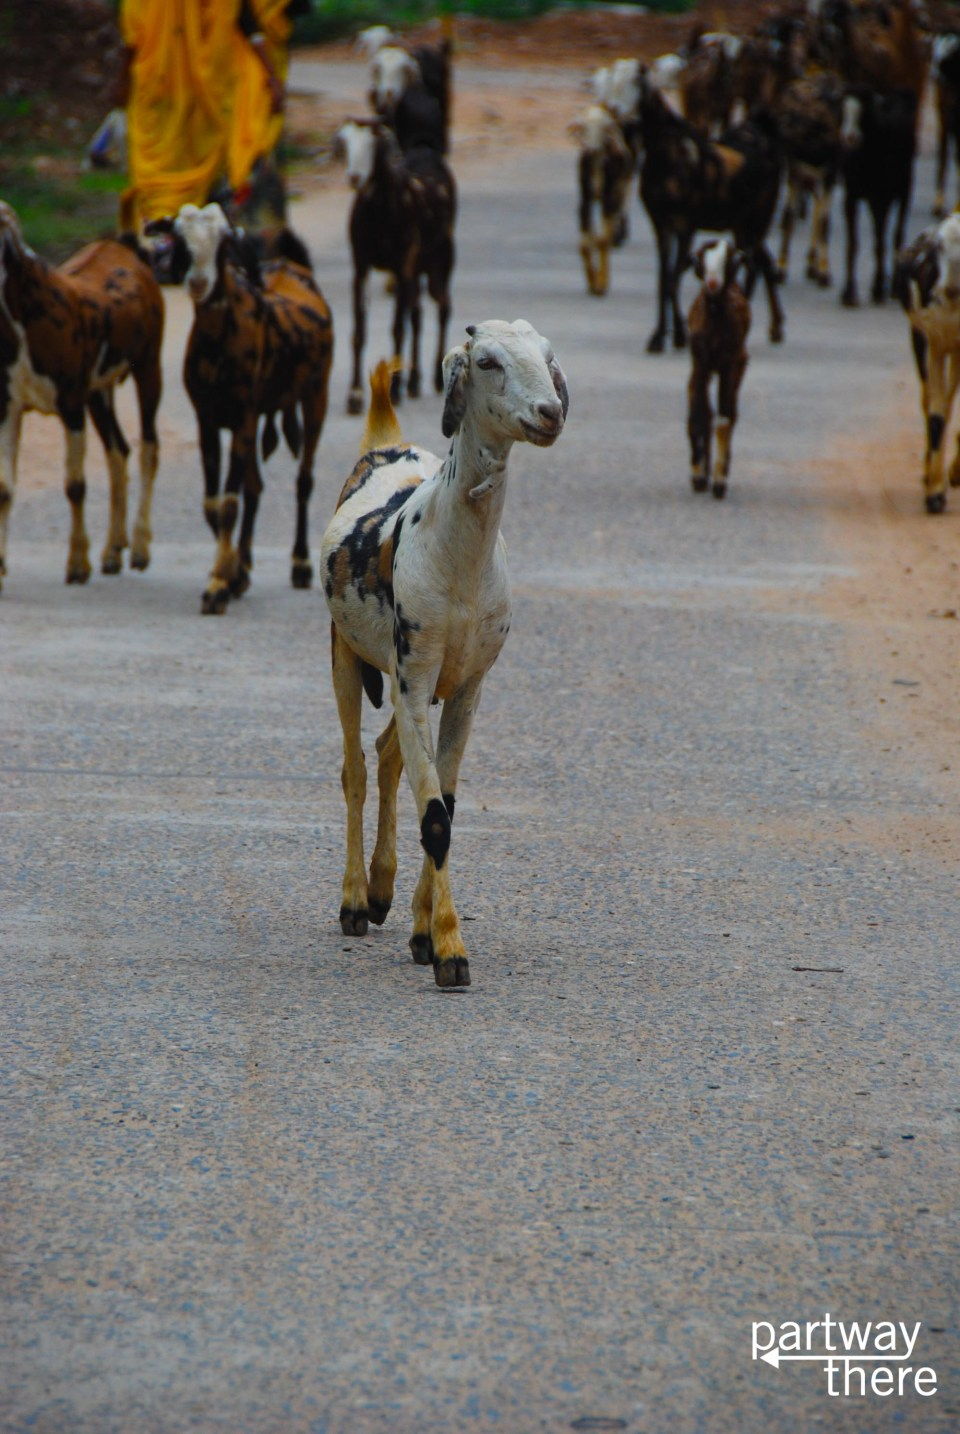 Goats on the road in India